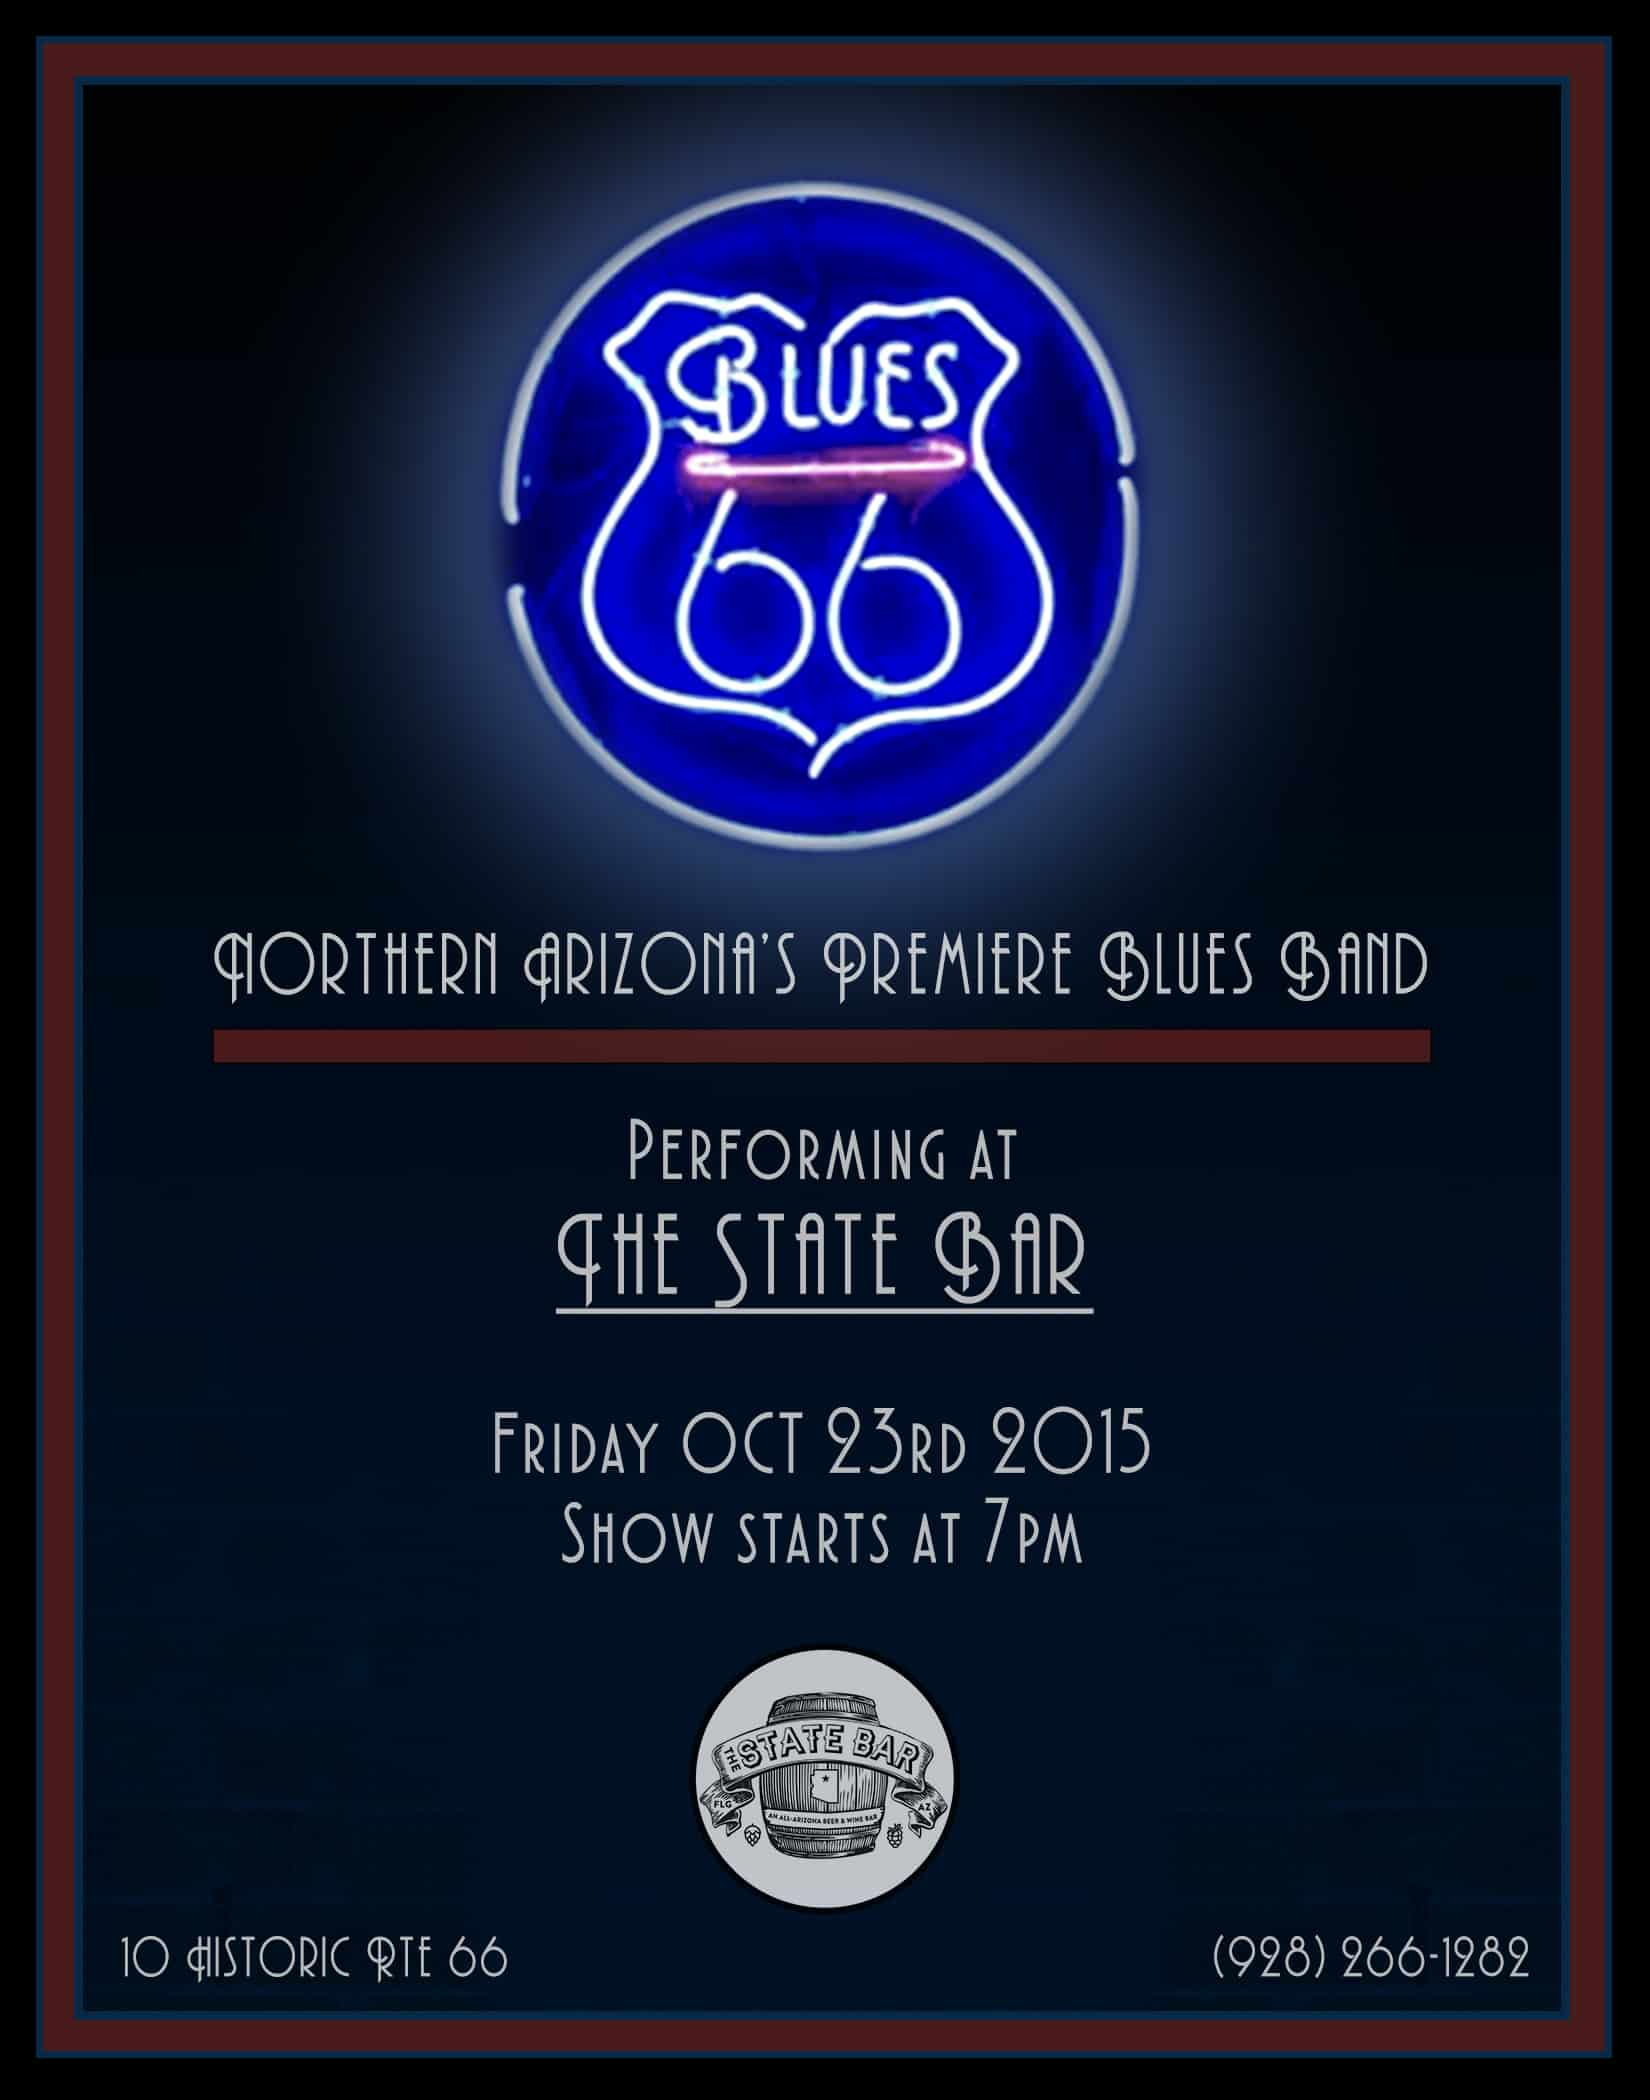 Blues 66 Neon Sign Poster No Pics